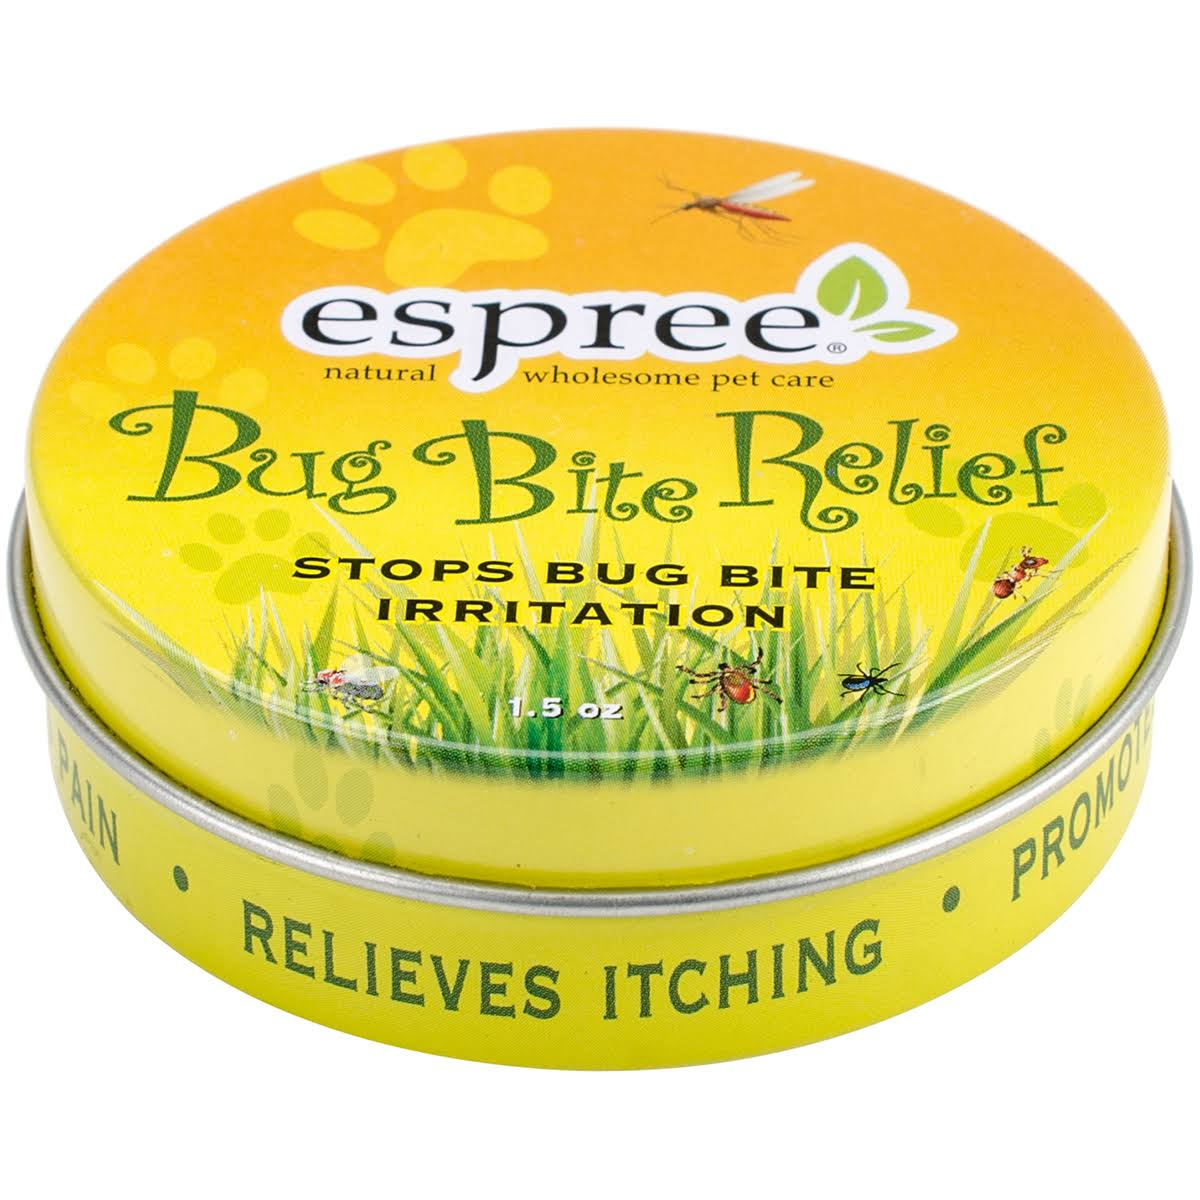 Espree Natural Bug Bite Relief Balm - 1.5oz